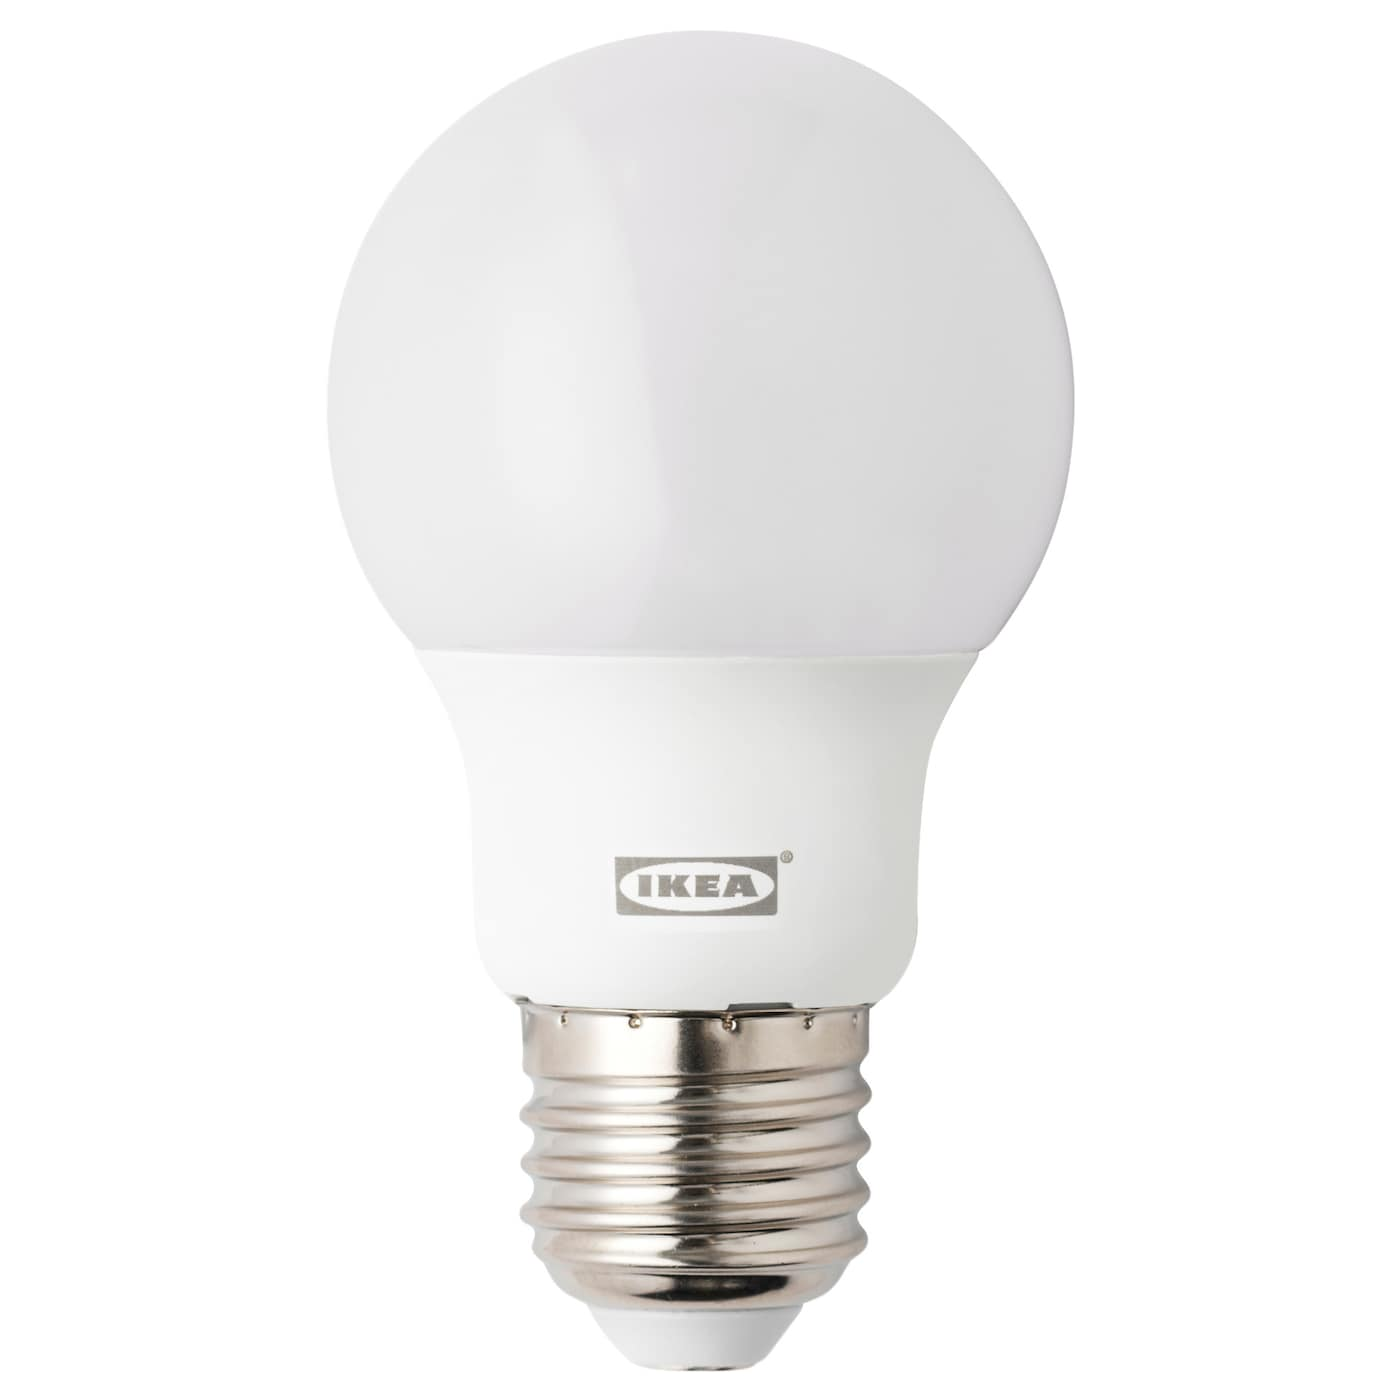 IKEA RYET led-lamp E27 400 lumen